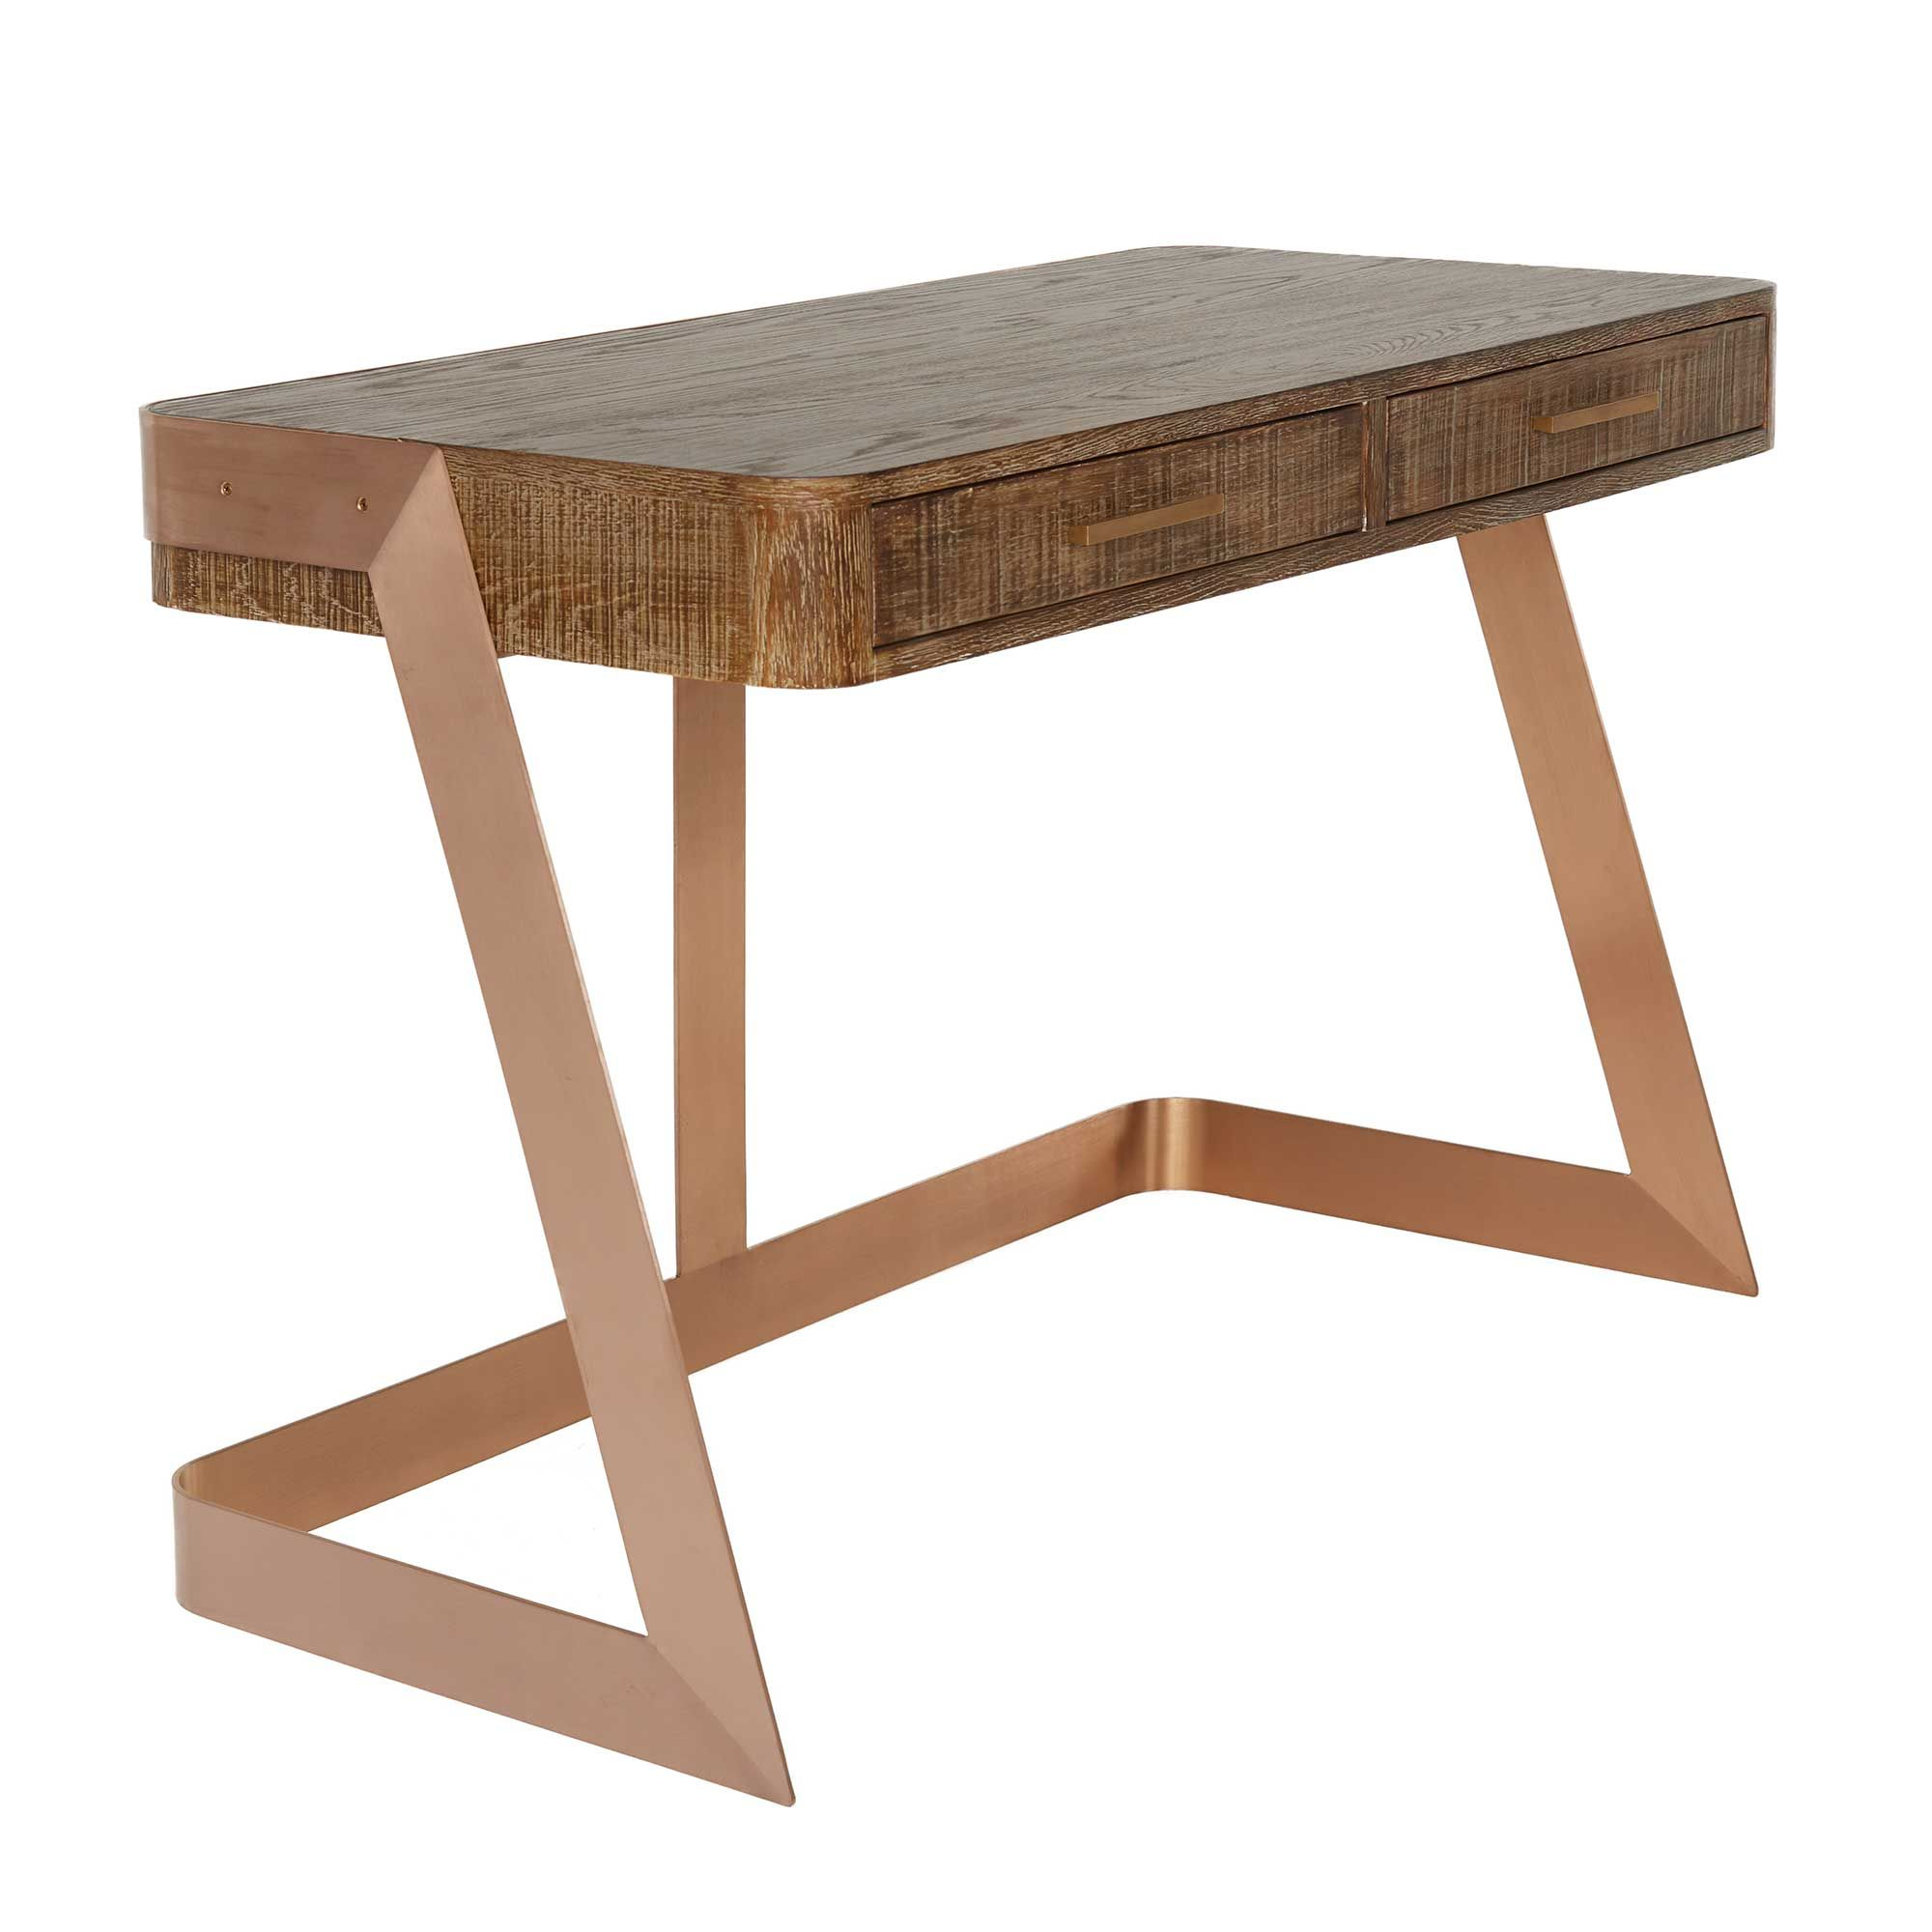 The right working environment requires the right desk, and the Oregon is simply stunning. Tapping into the popular copper trend, its crafted from reclaimed oak and metal with a spacious smooth top for the uttermost practicality.